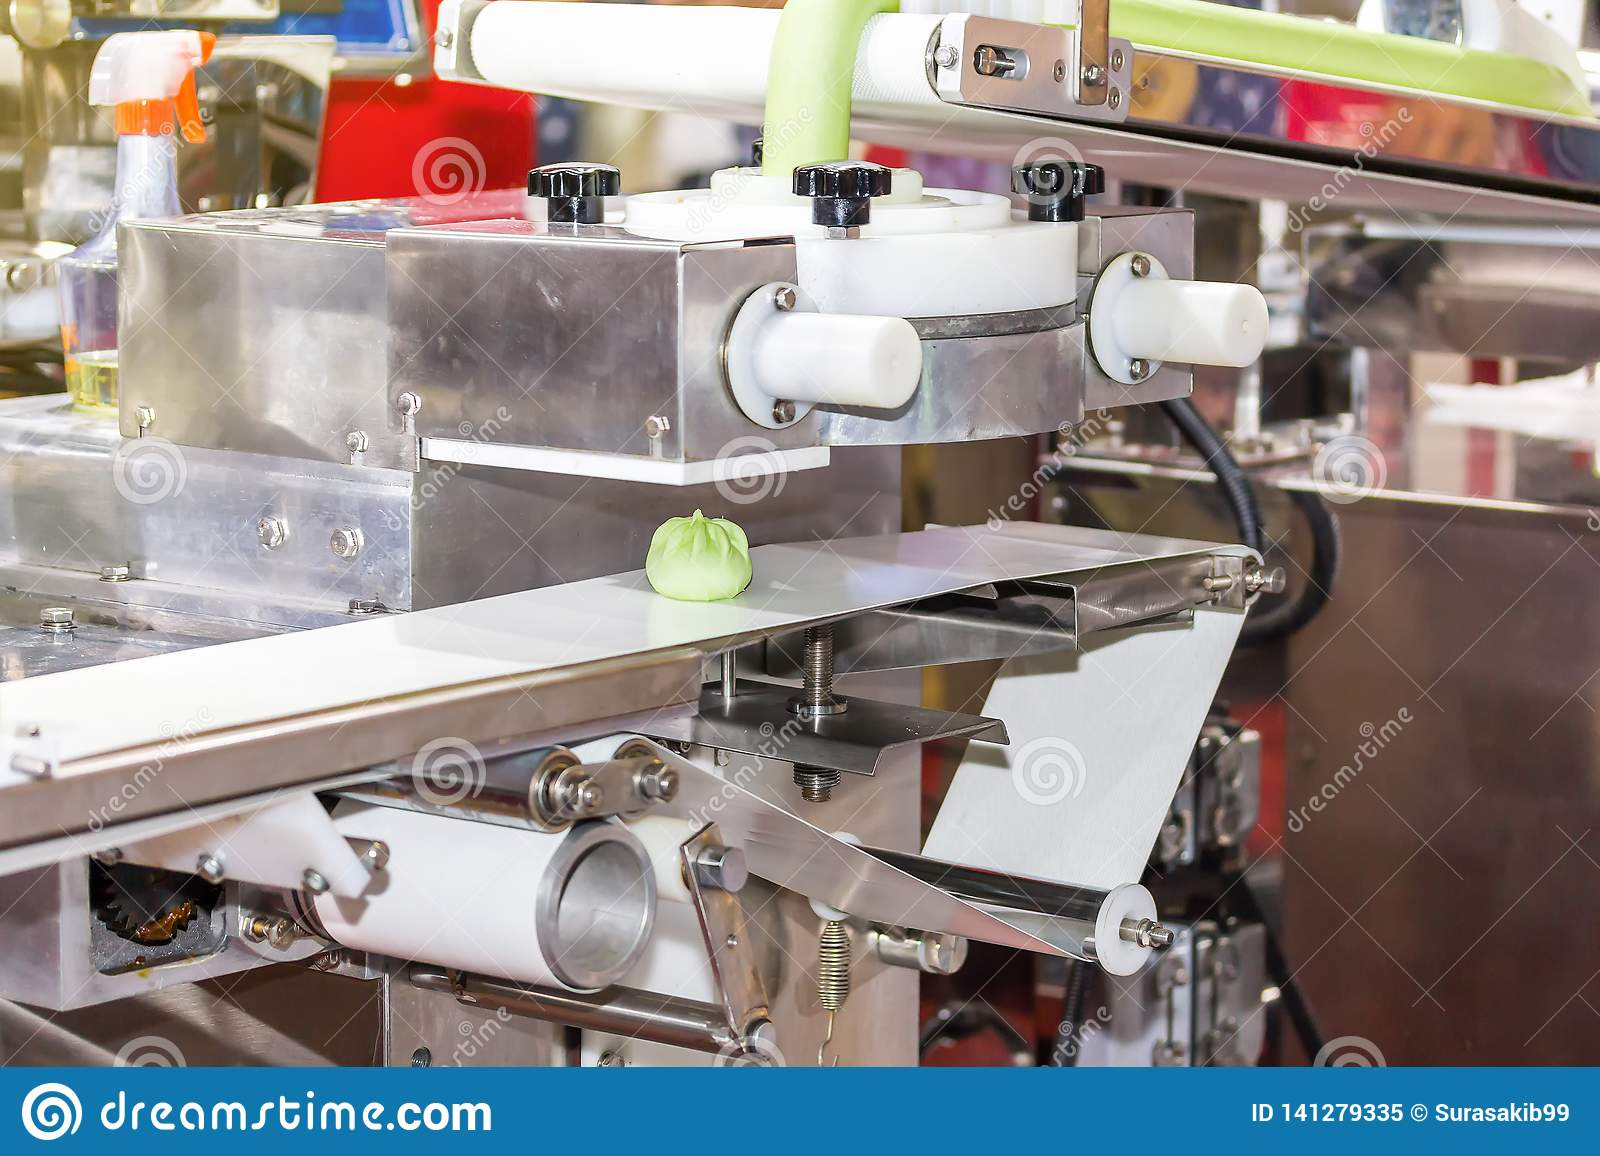 Close up chinese or asian food steamed stuffed buns on automatic belt conveyor of food making machine in production line for high